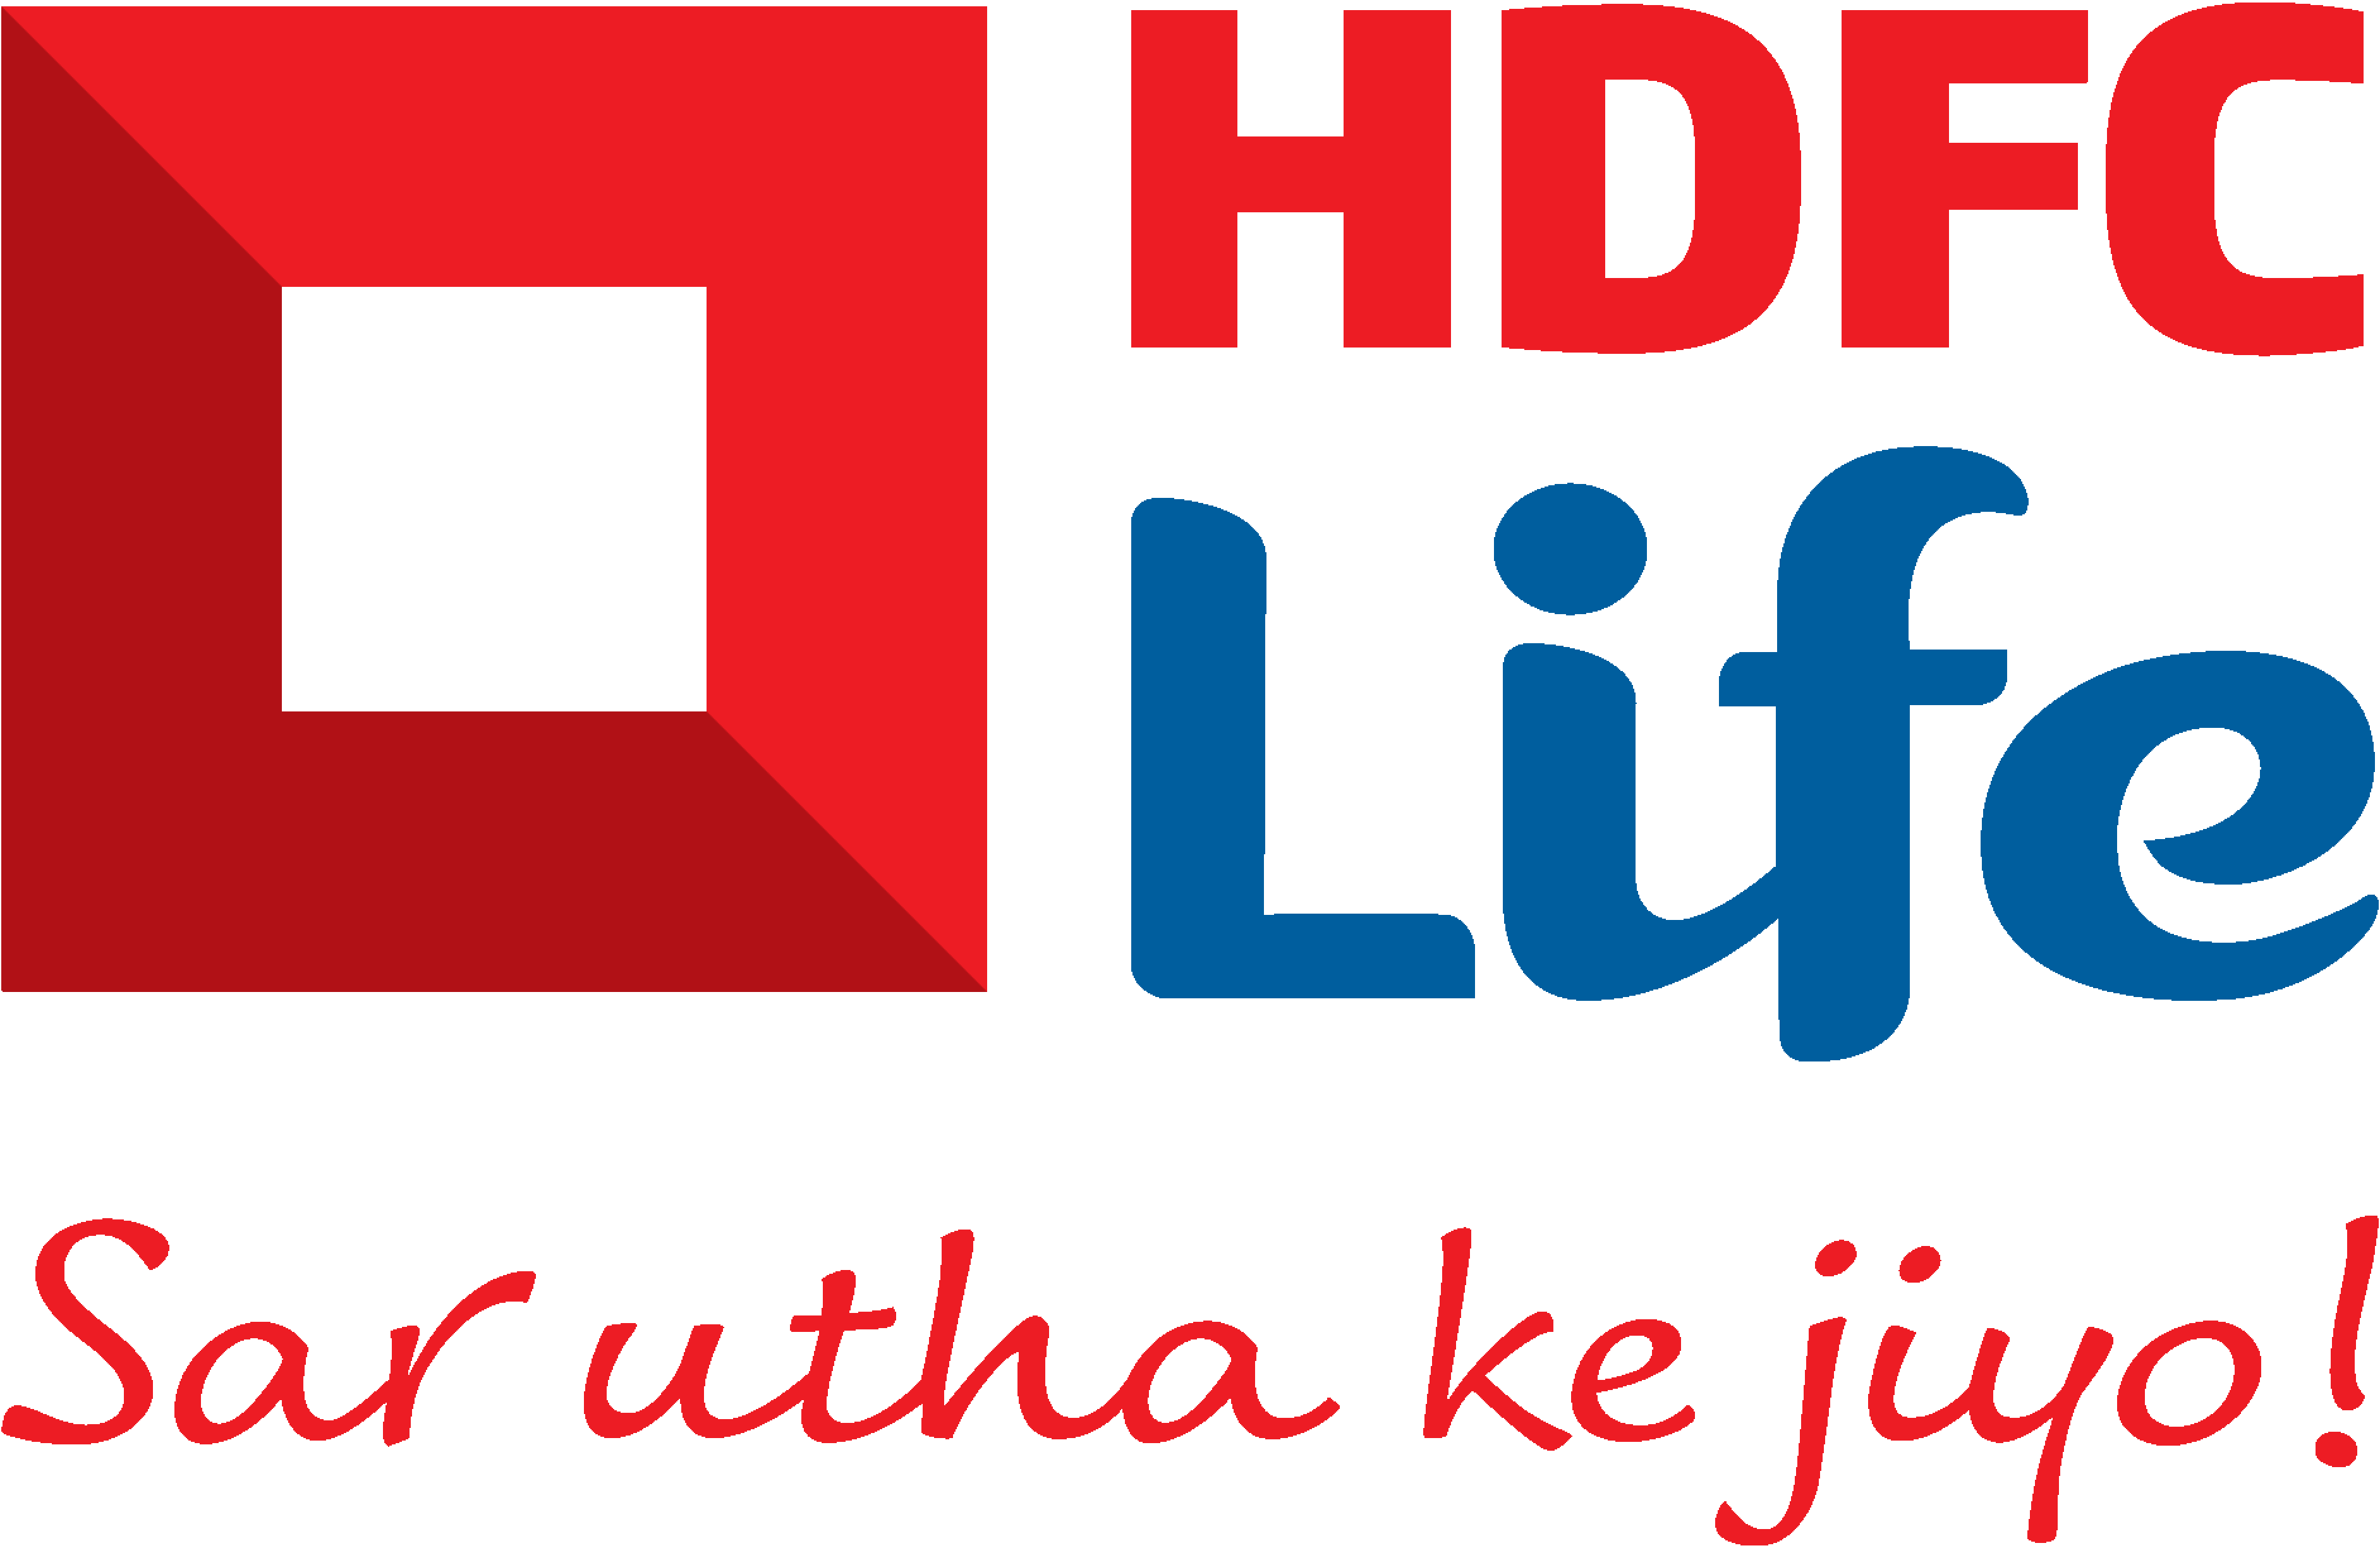 New Delhi Hdfc Bank Is In The Process Of Making The Personal Loan Approval Automated And The Task Will Be Do Investing Personal Loans Mutuals Funds